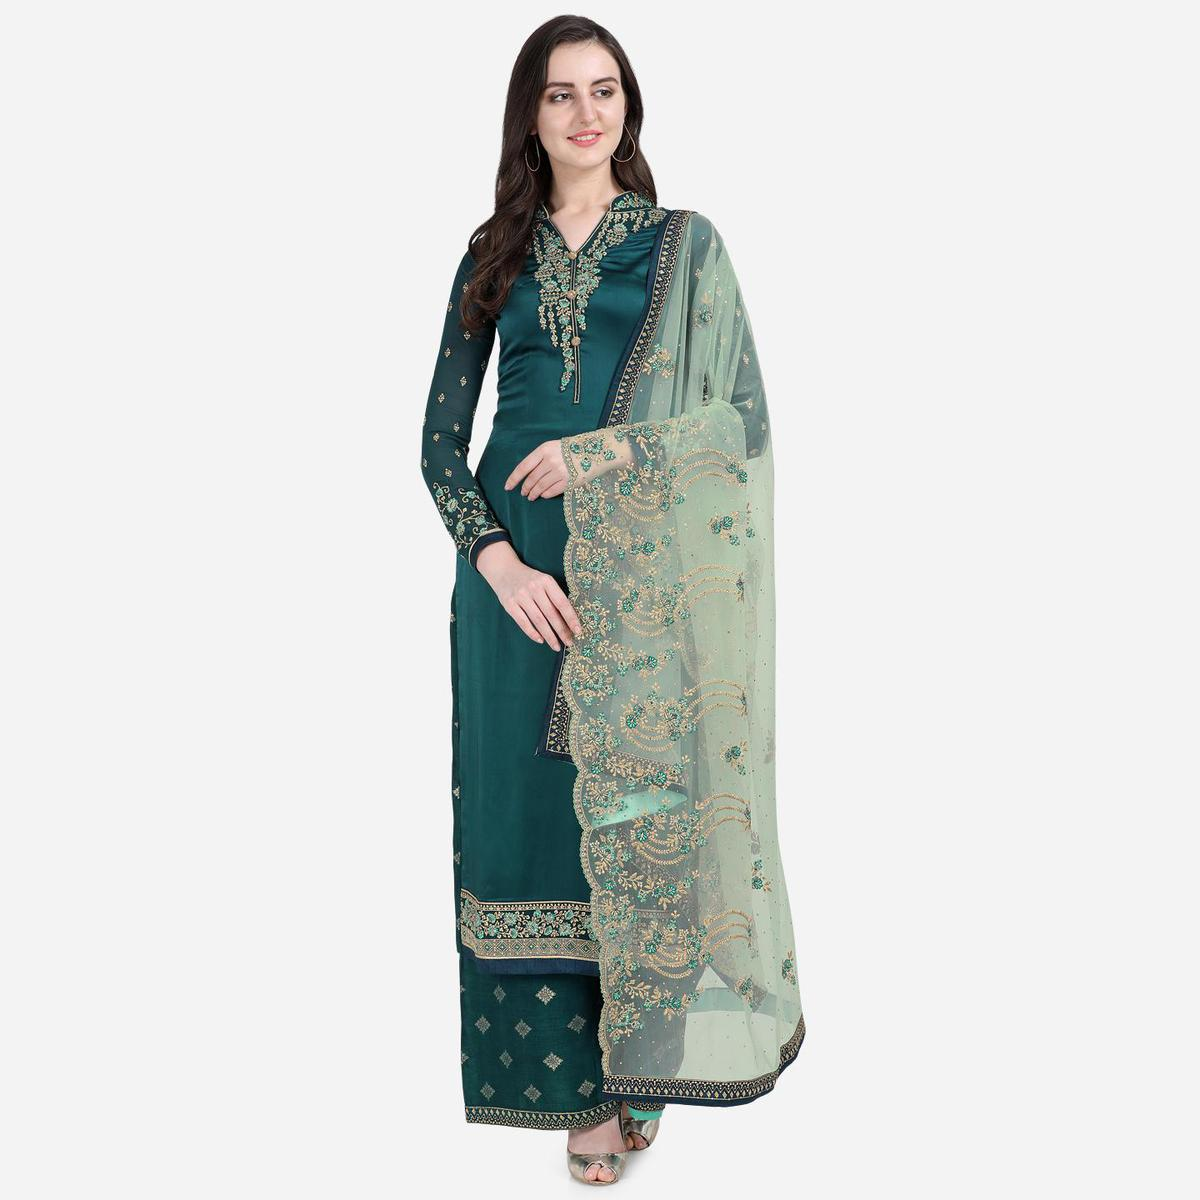 Stylee Lifestyle - Navy Blue Colored Party Wear Embroidered Satin Sharara Suit